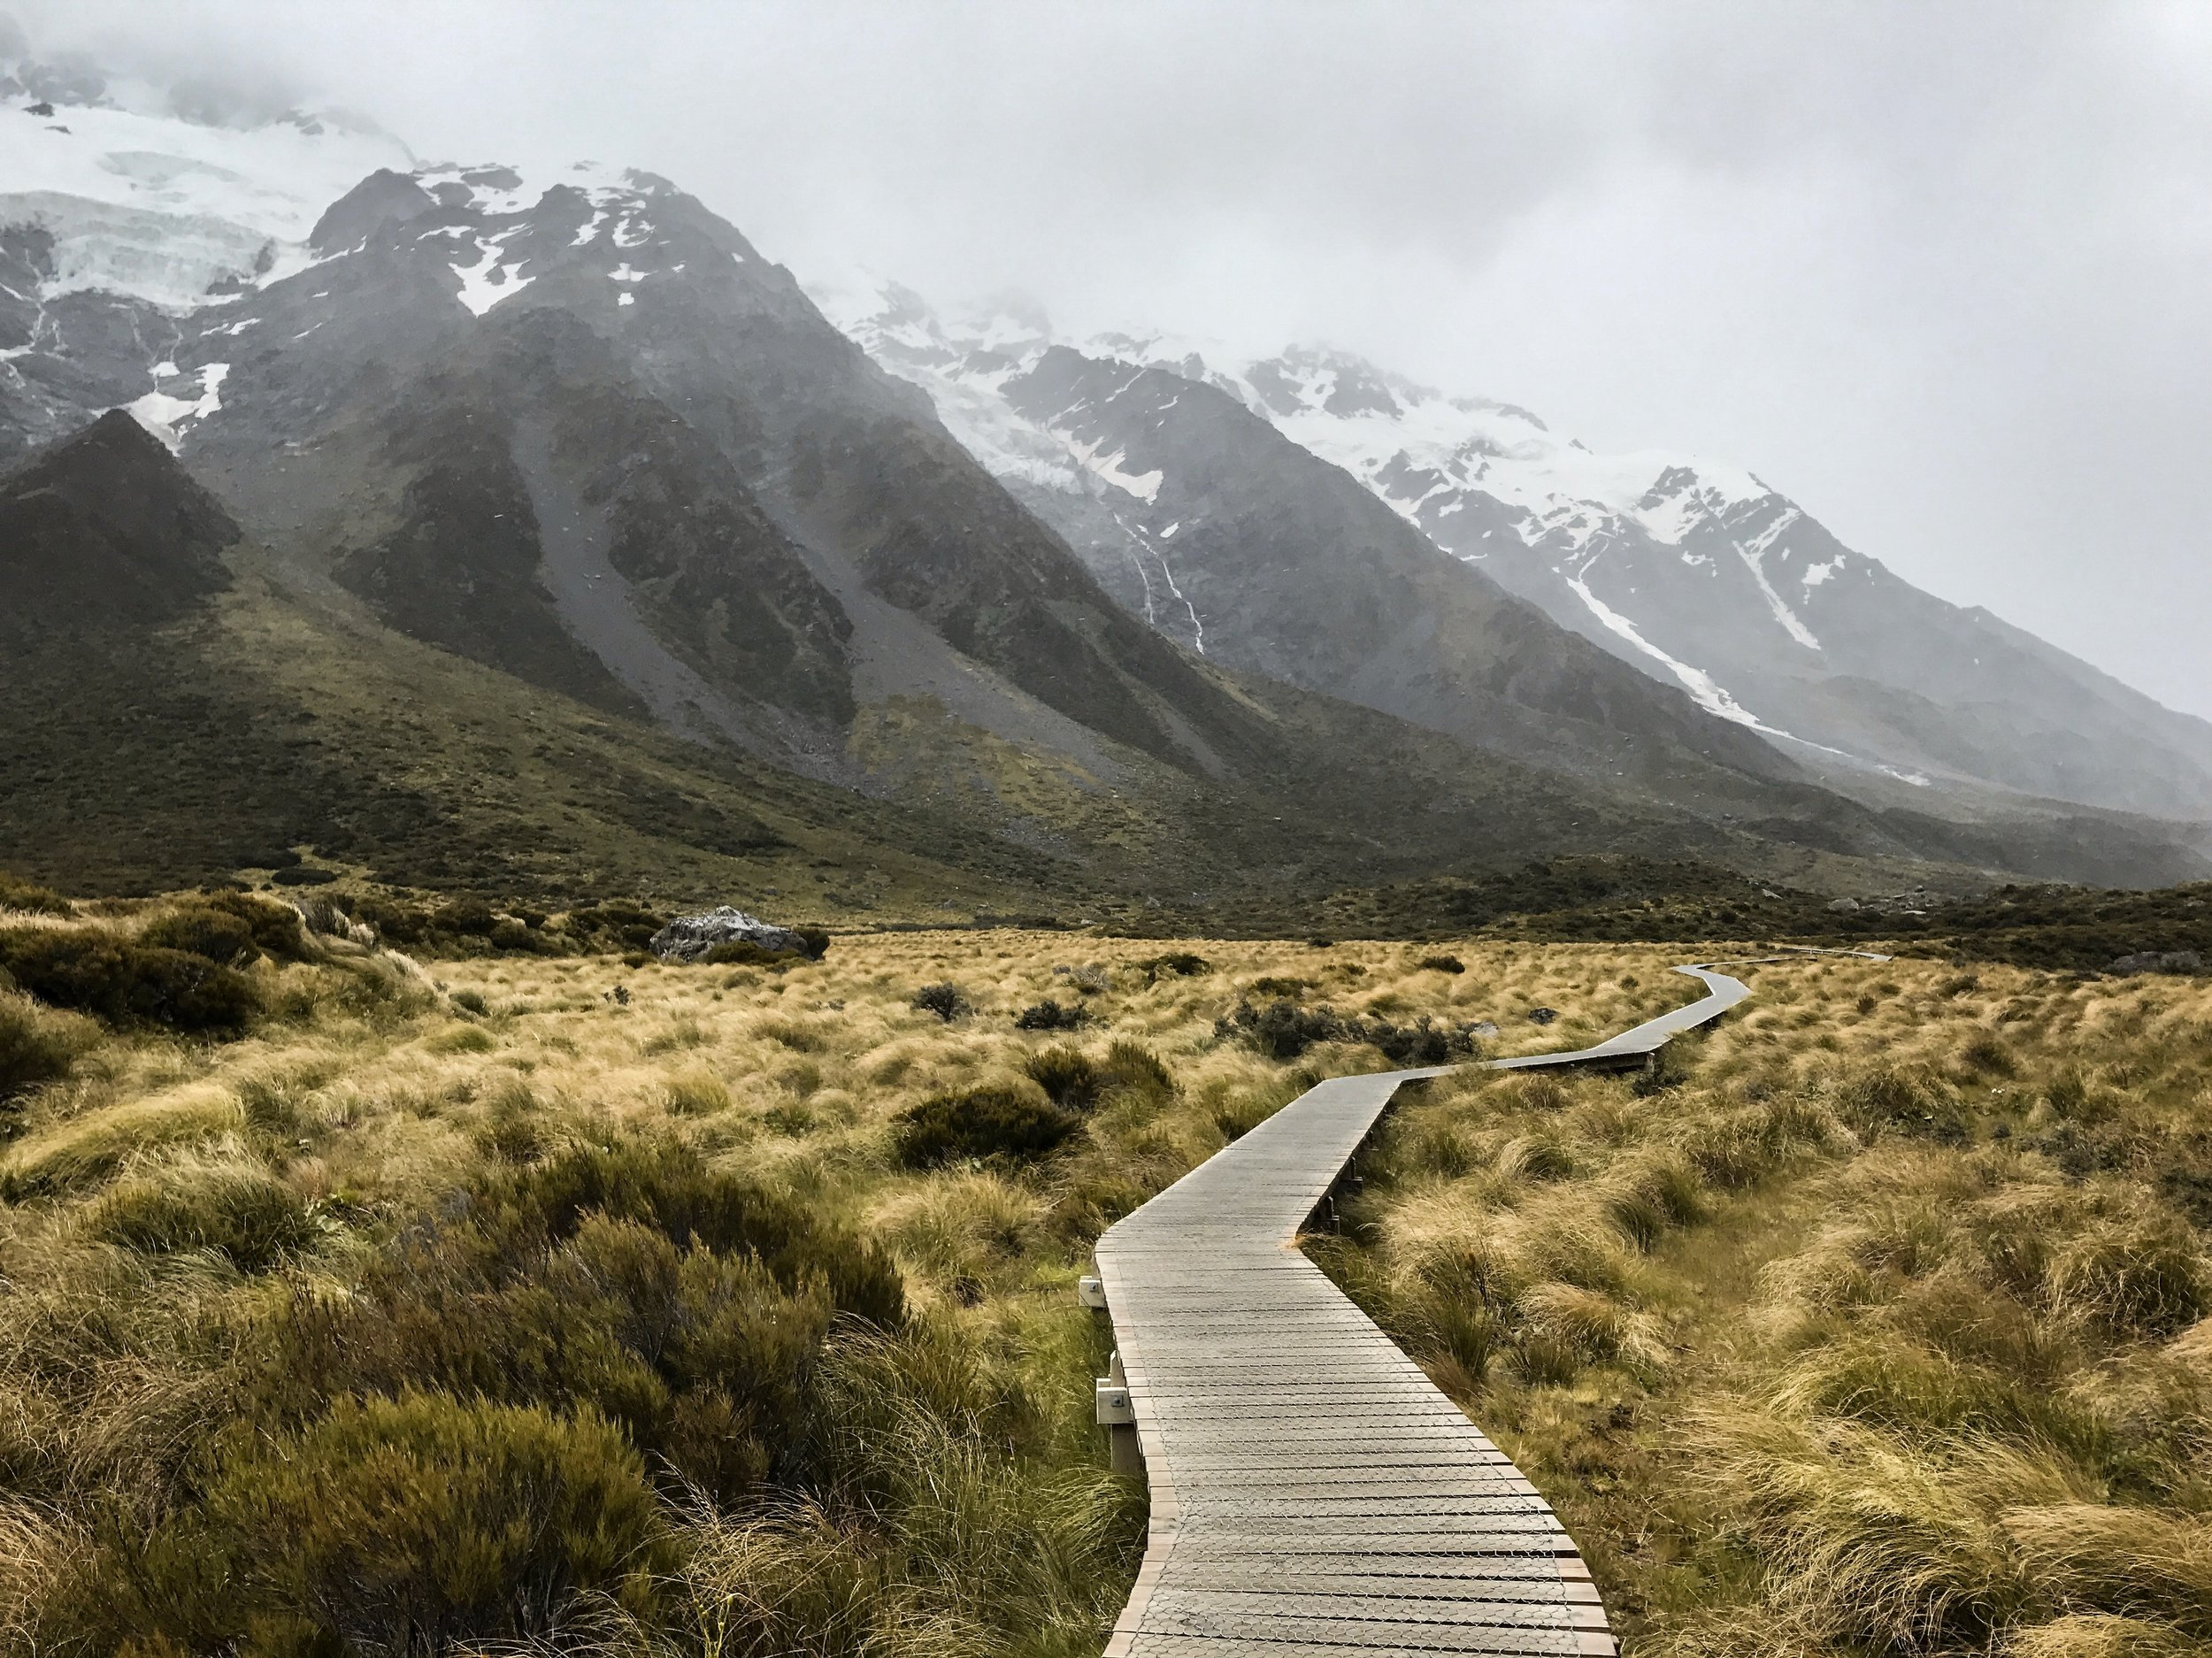 Hiking through New Zealand. Photo by Dalton Perry